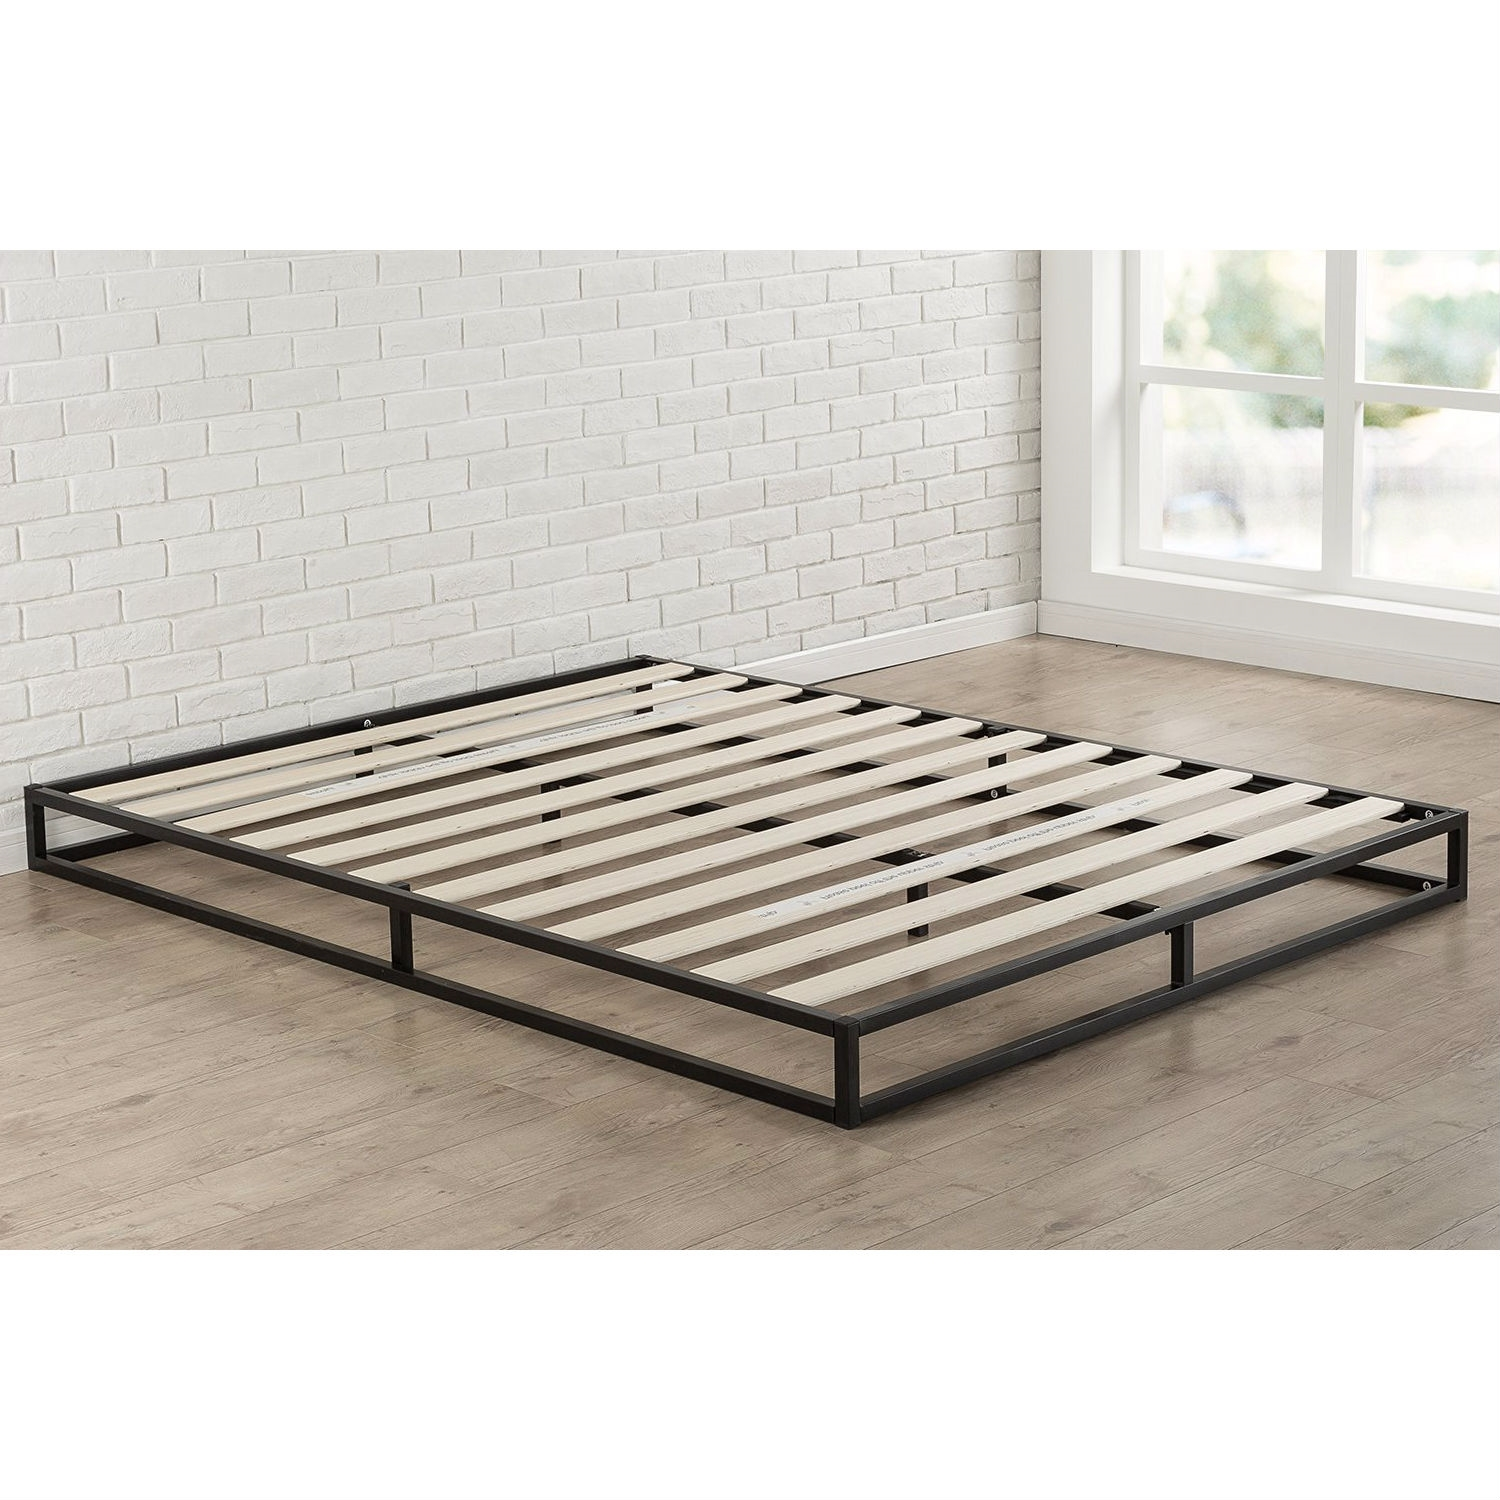 King size 6 inch Low Profile Metal Platform Bed Frame with Wood